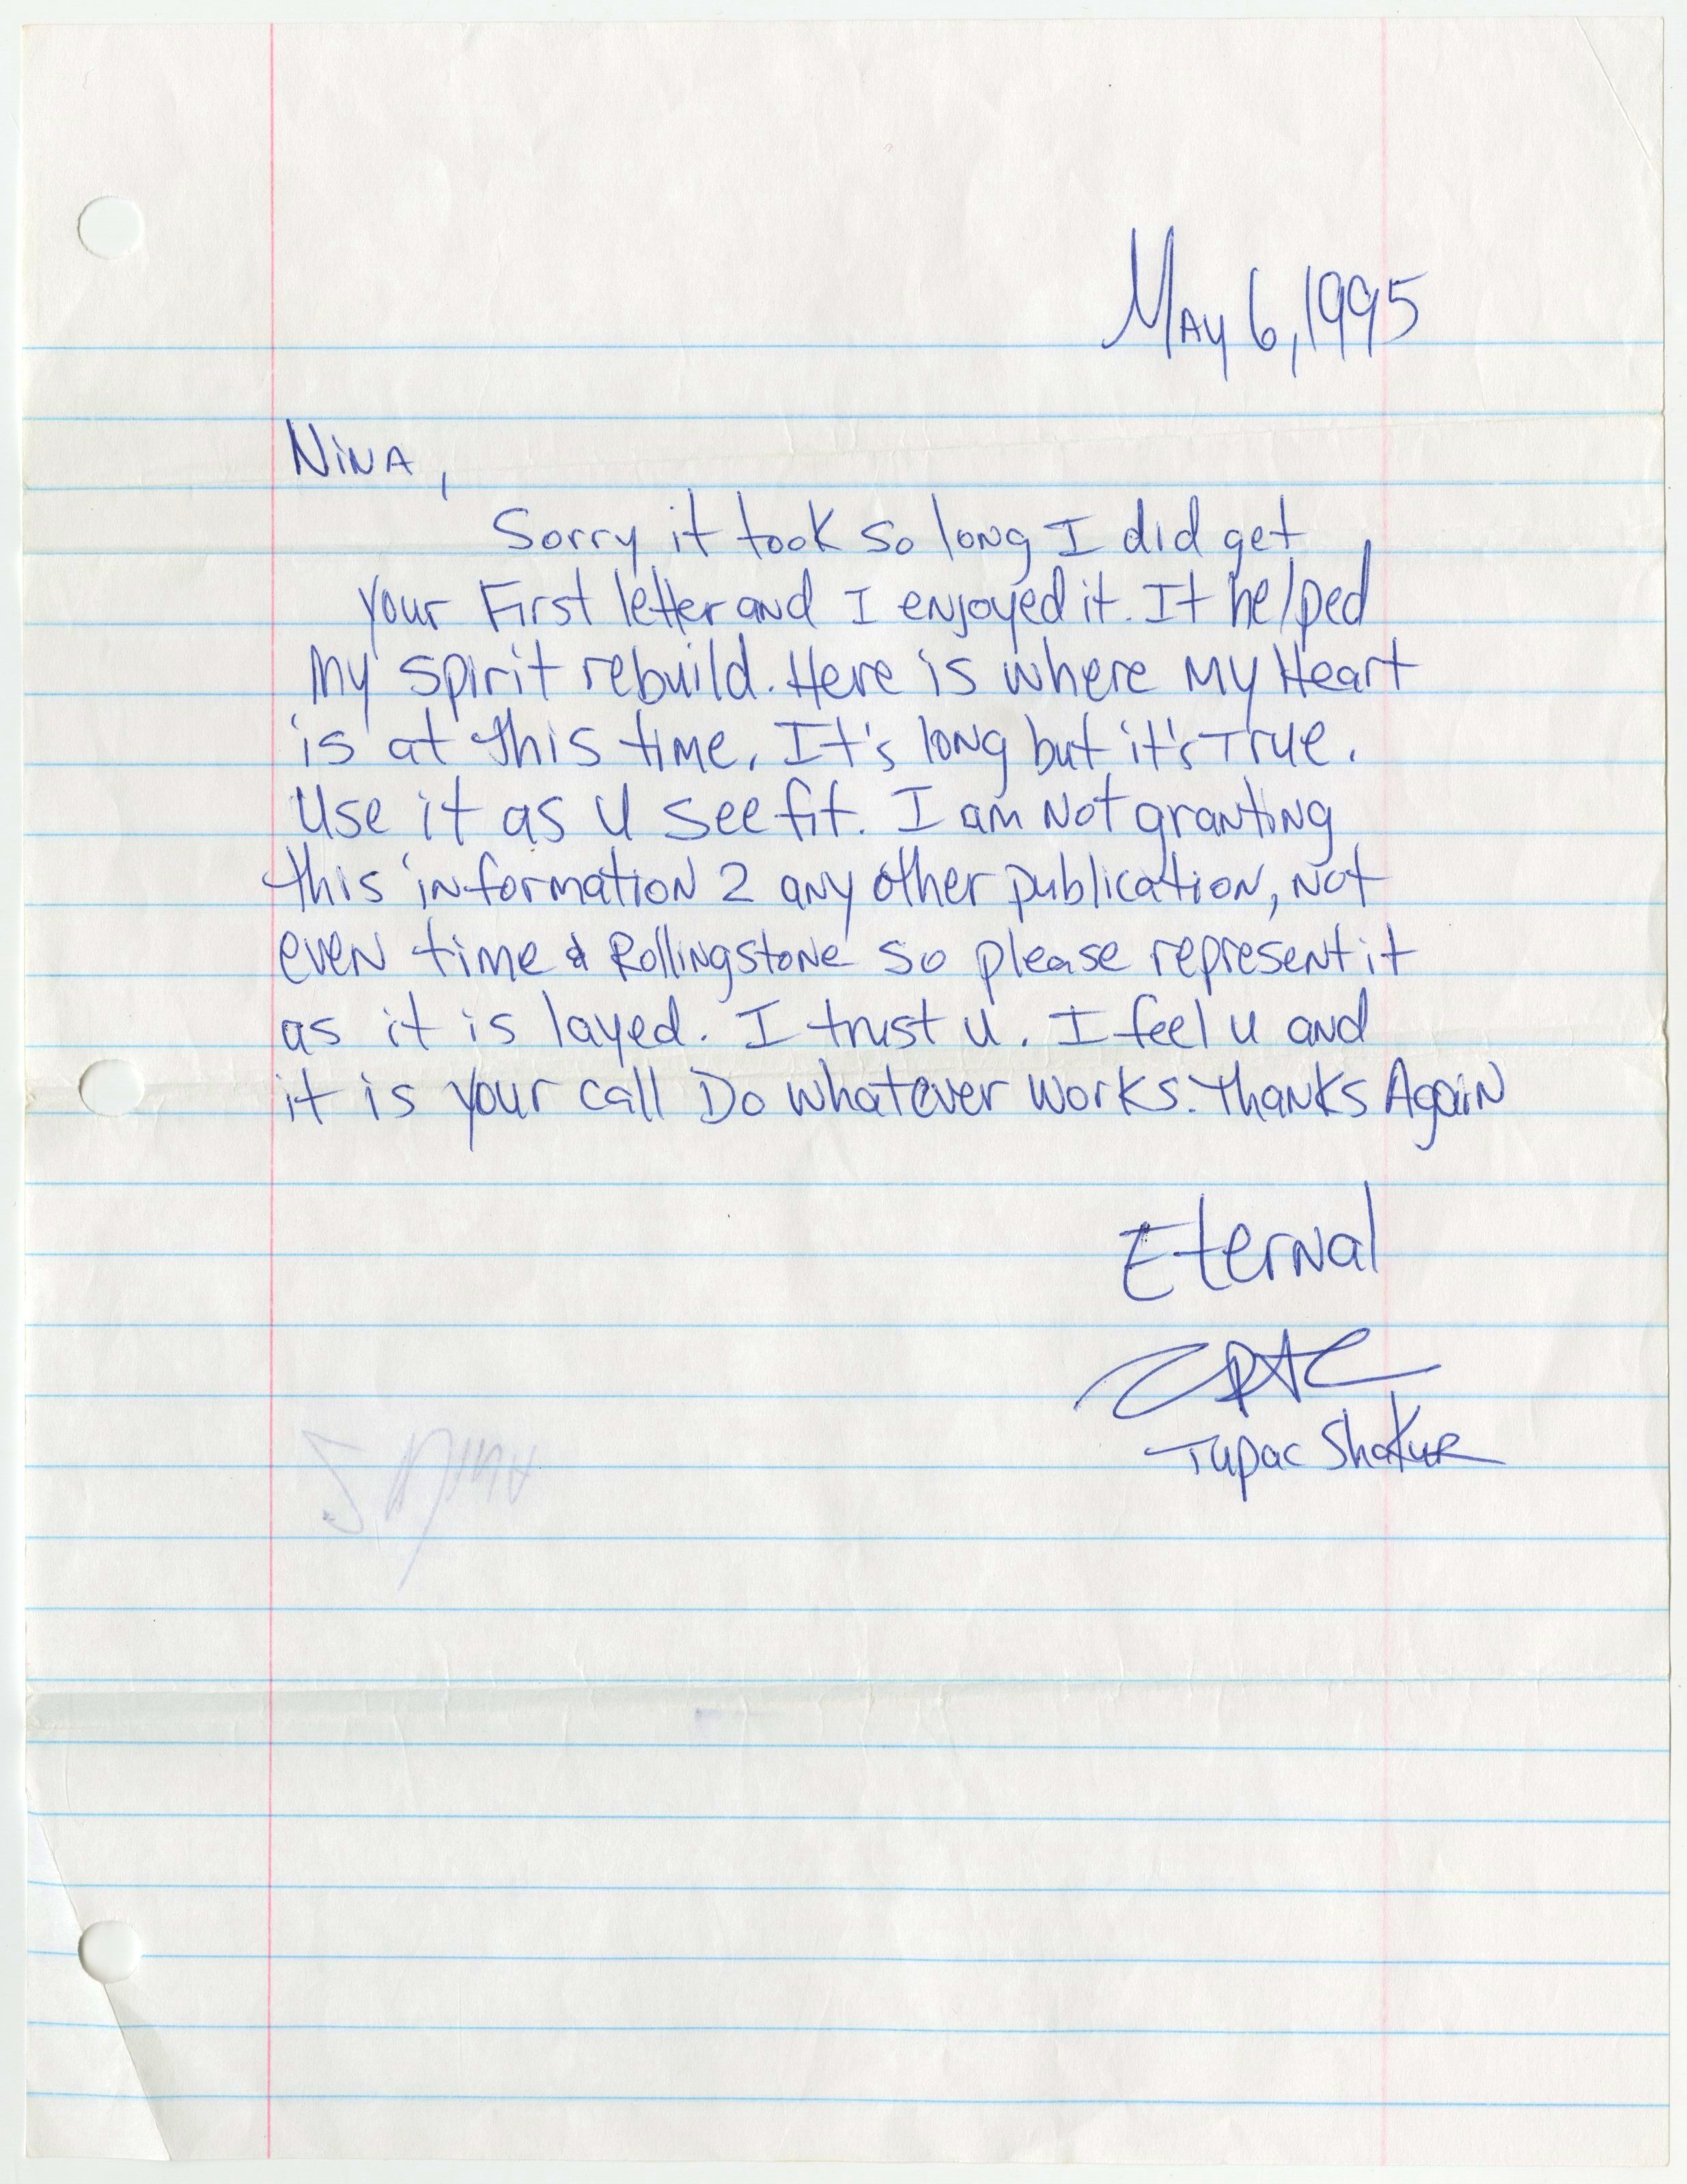 Letter Tupac Shakur Wrote From Prison Sold At Auction For